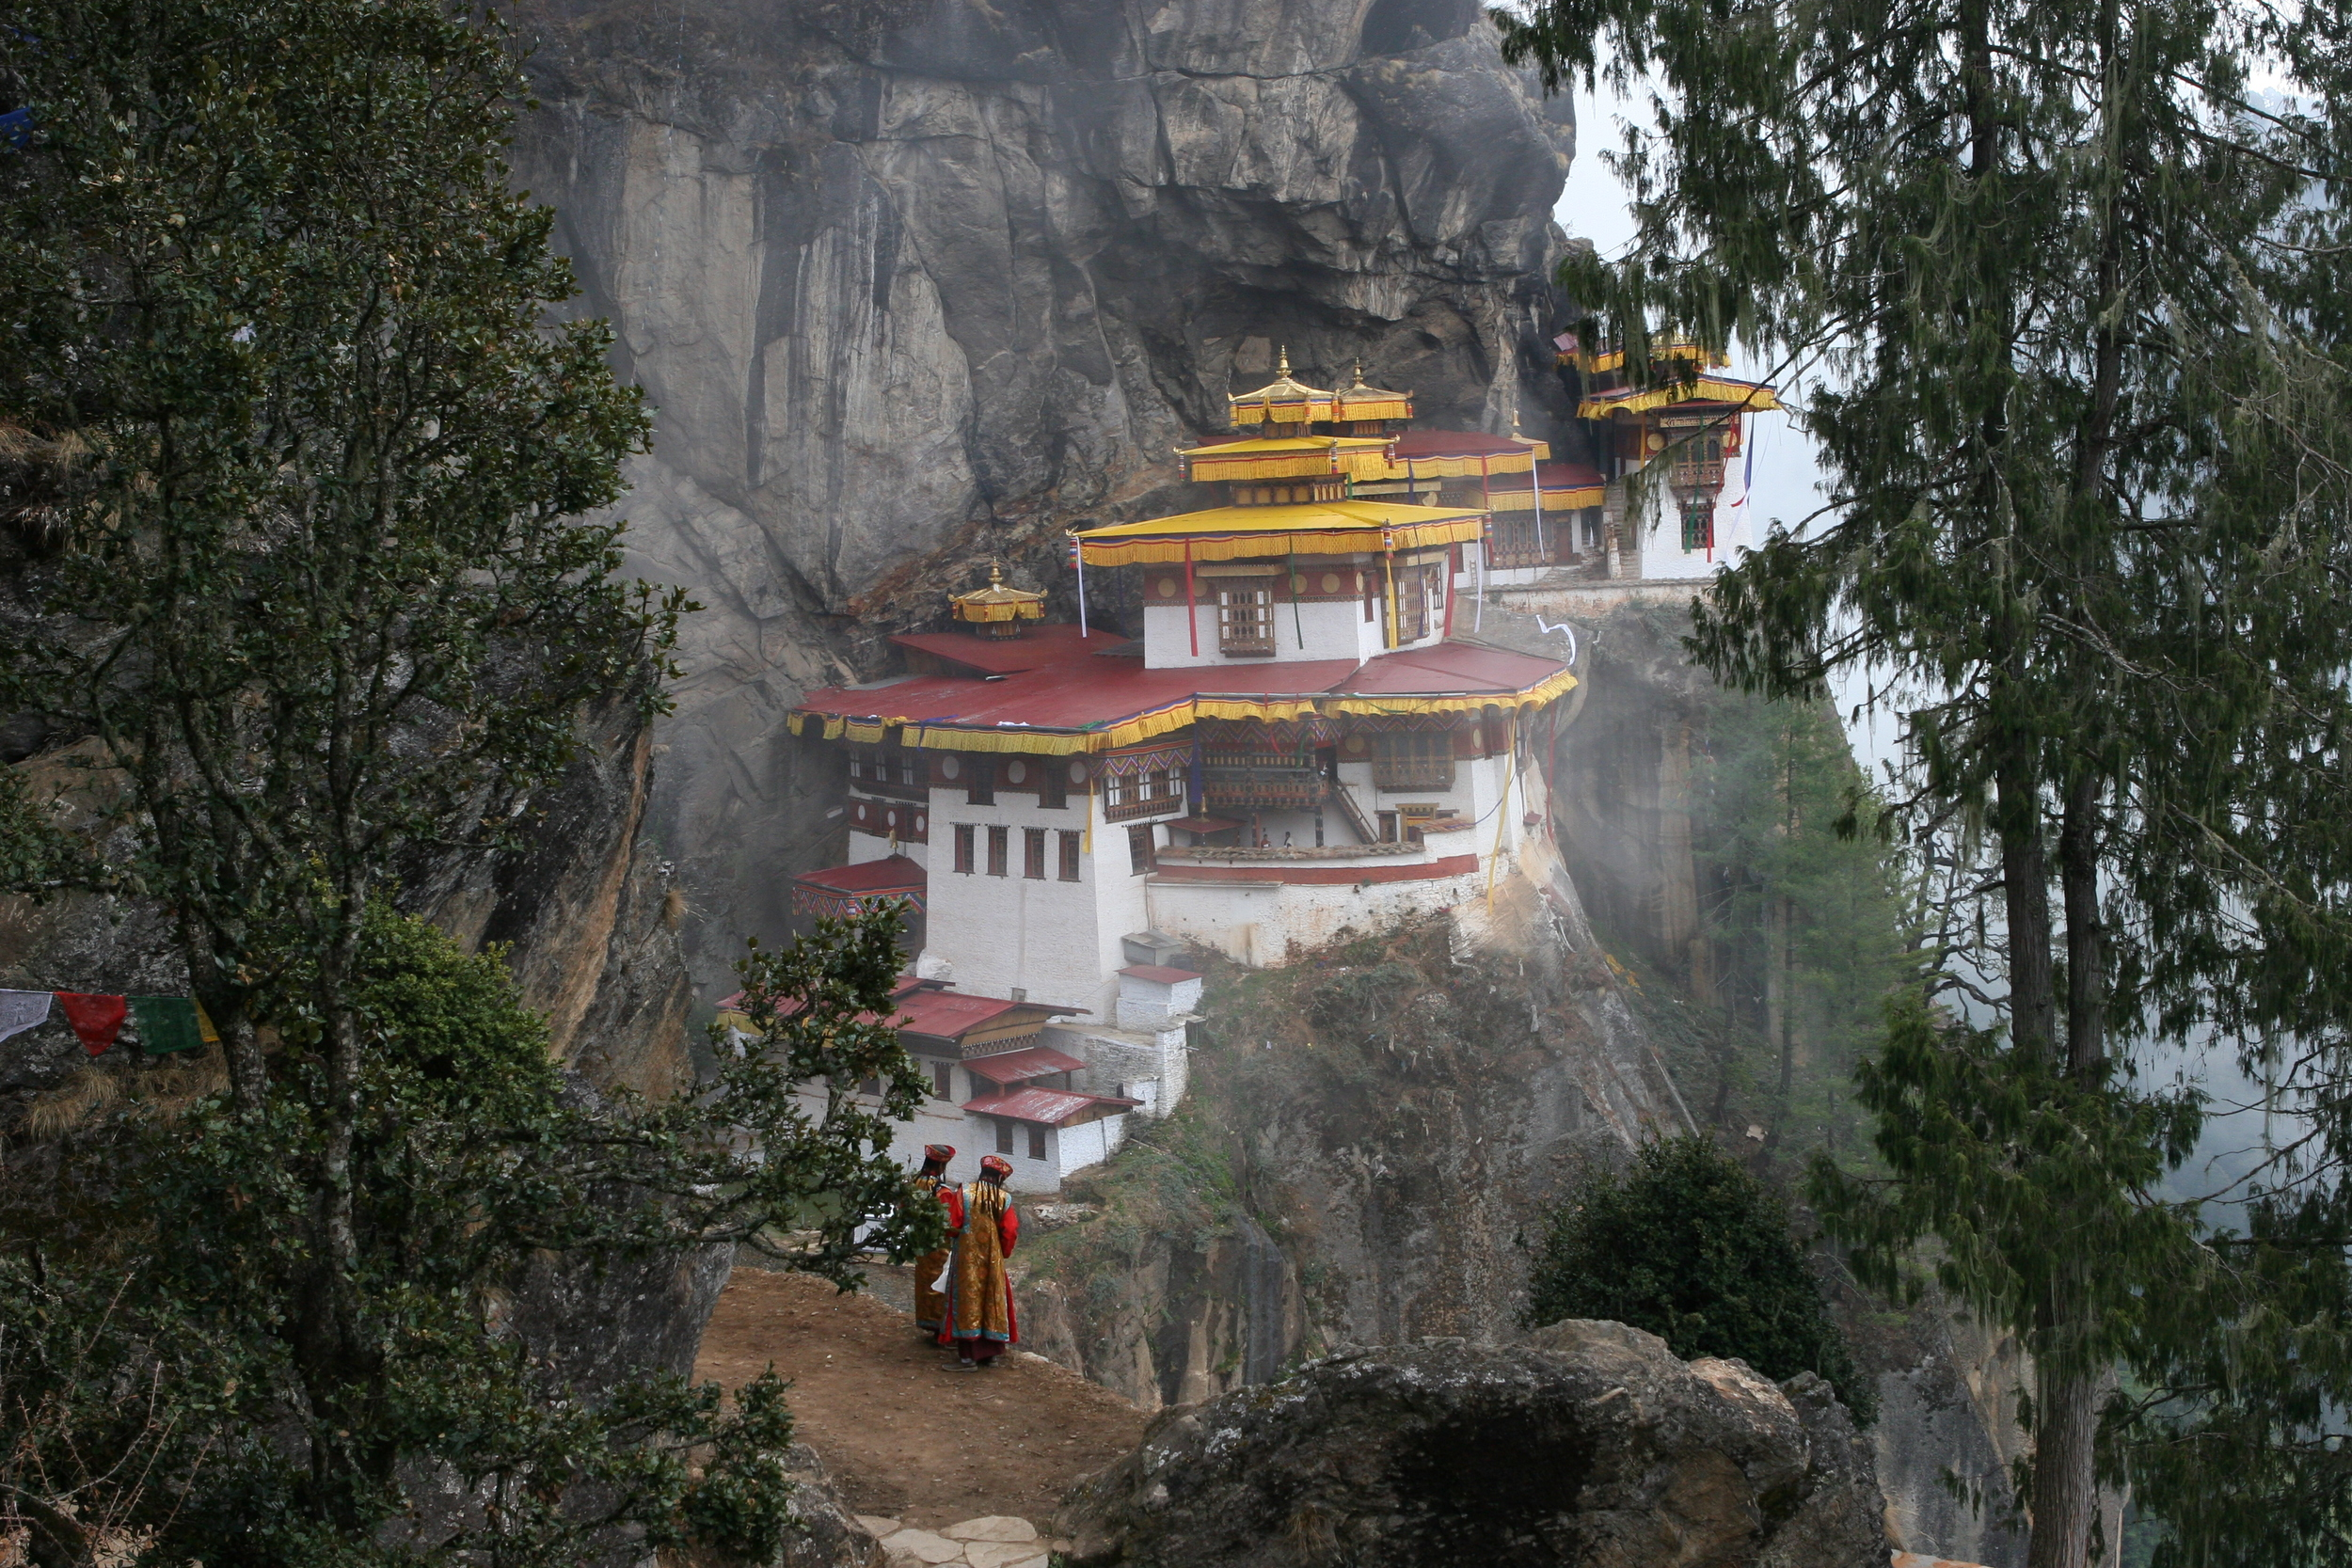 Taktsang Monastry, also called Tiger's Nest